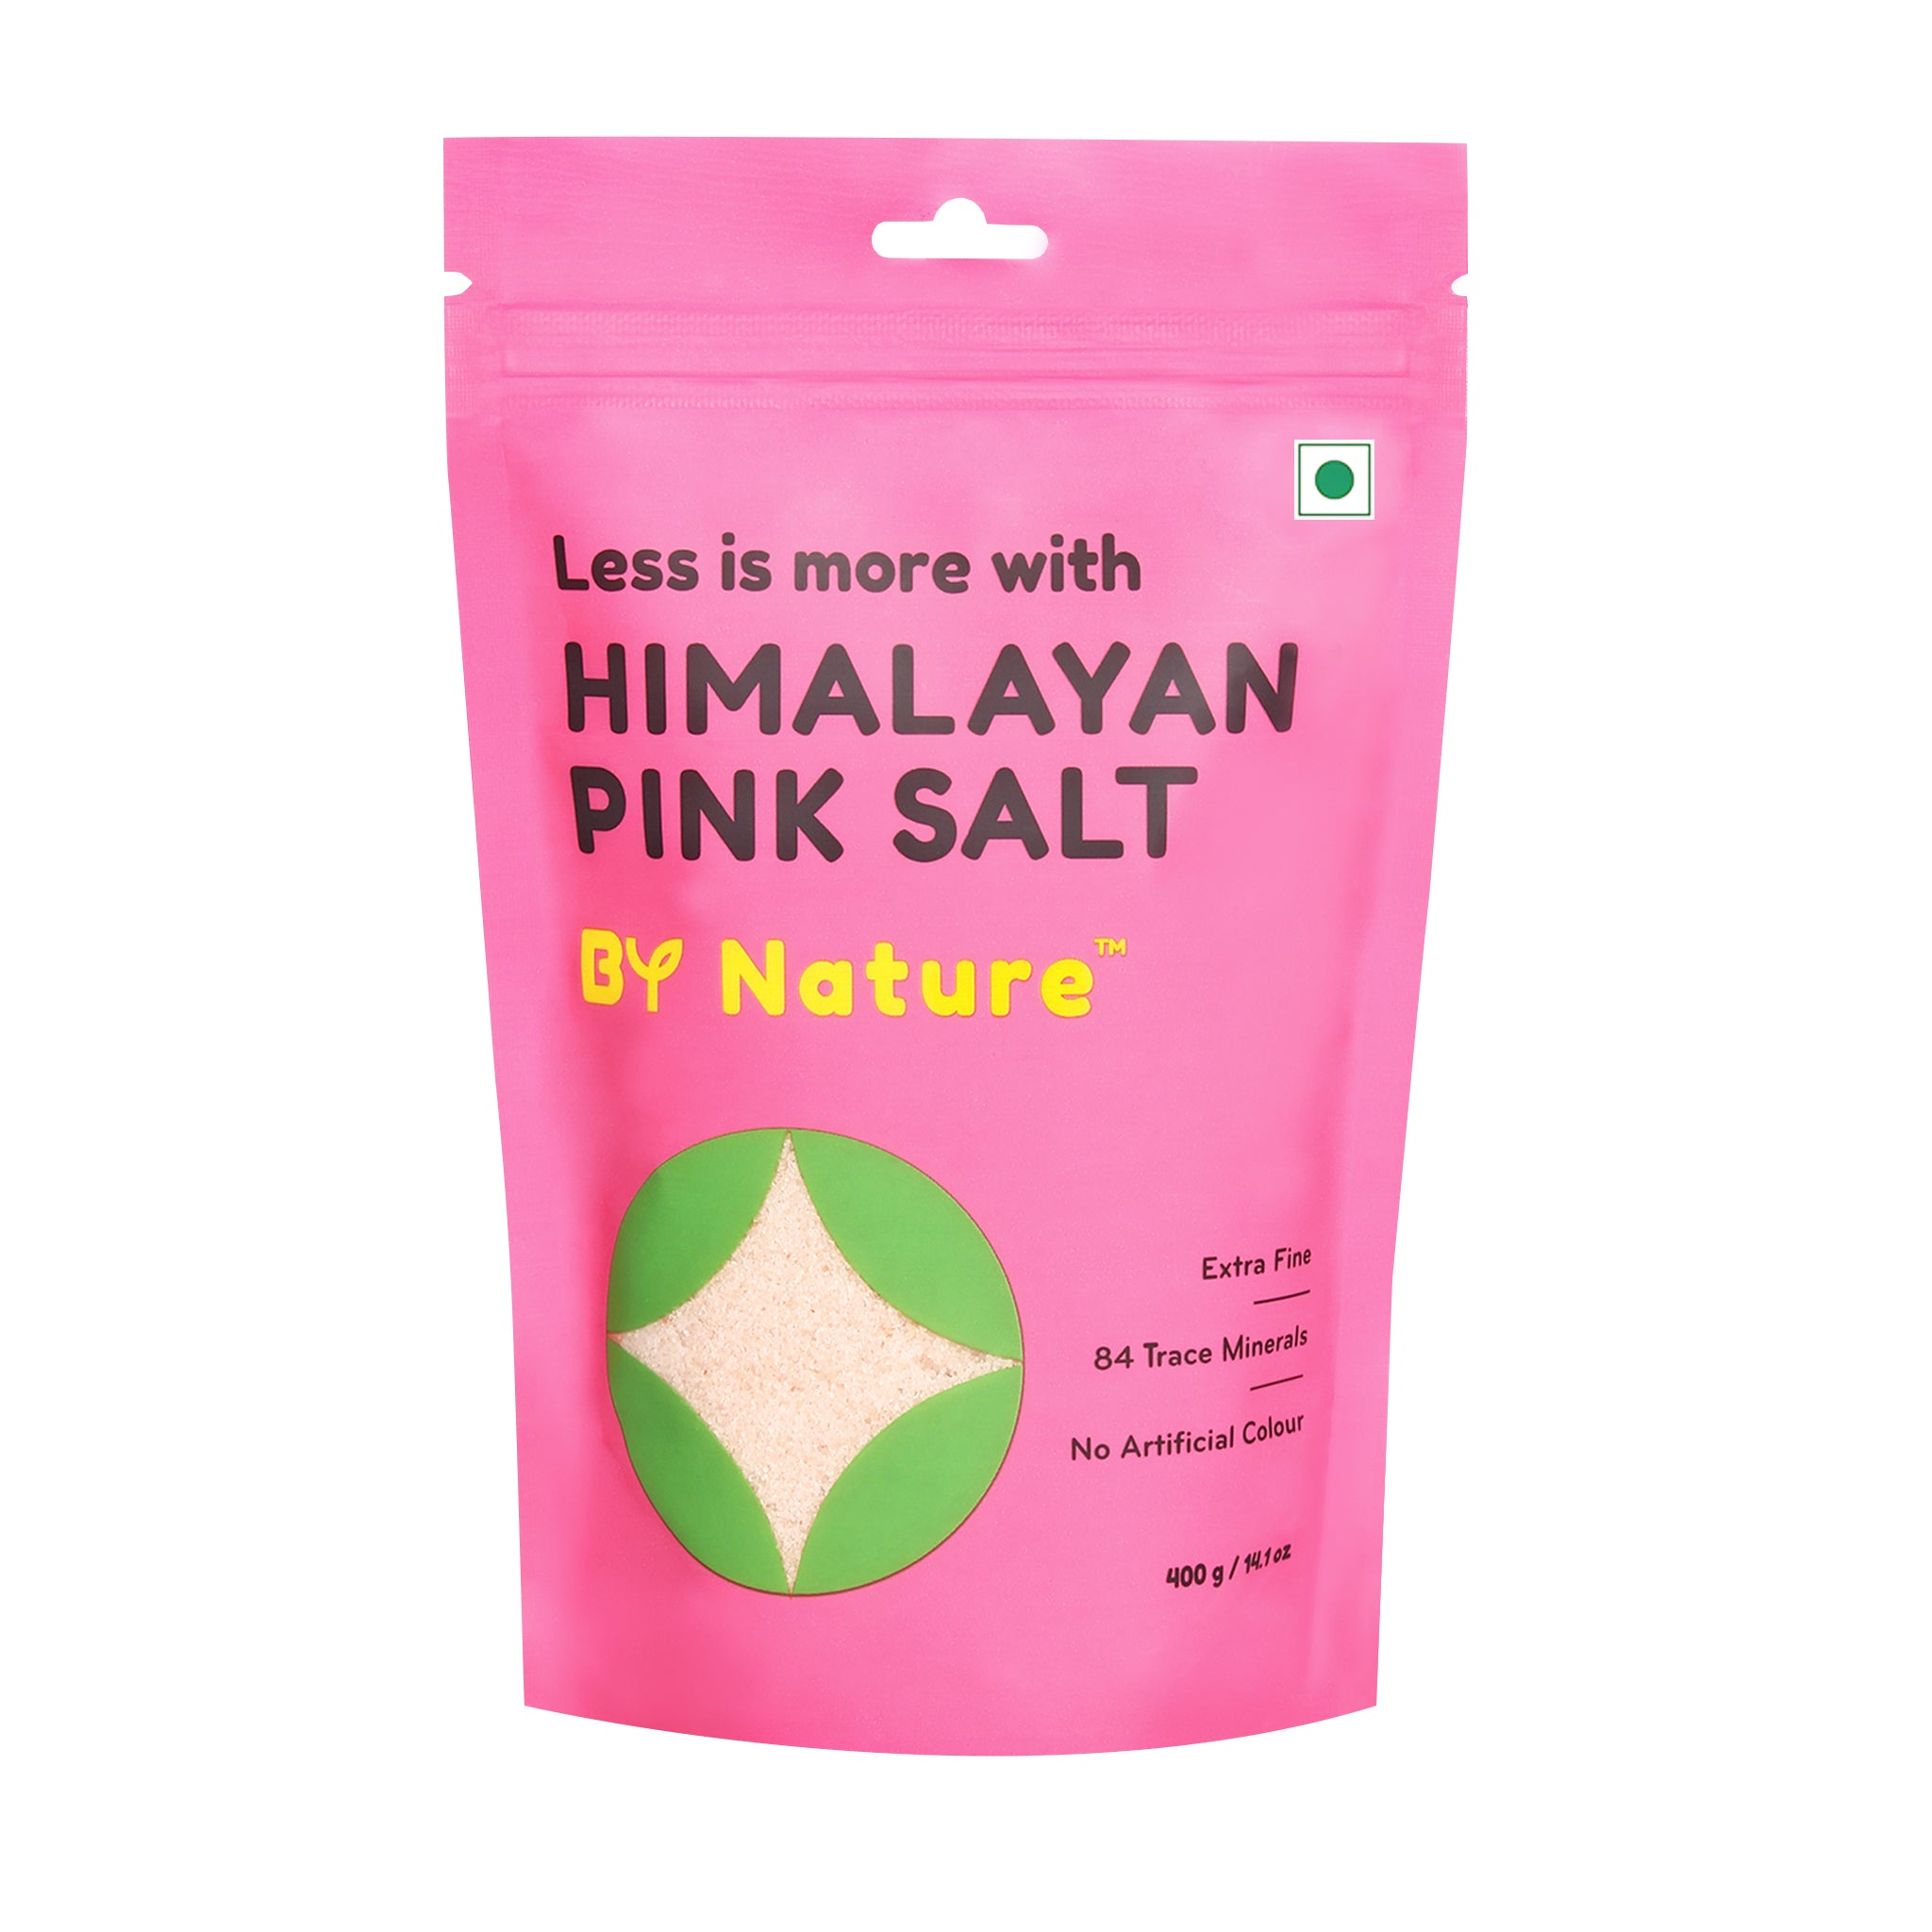 By Nature Pink Salt